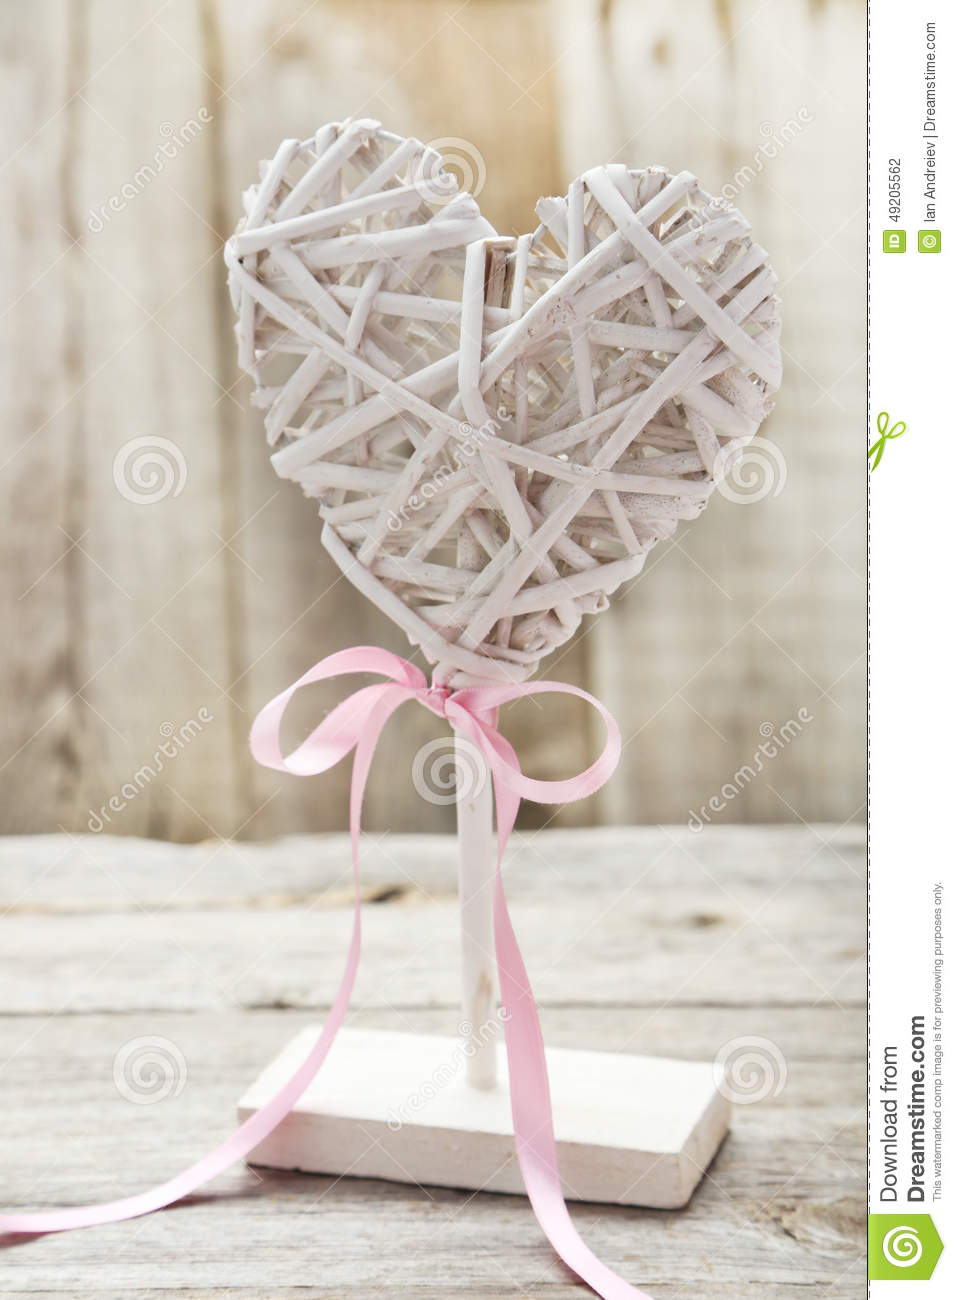 Wooden Decoration On A Grey Background Stock Photo - Image of ... on